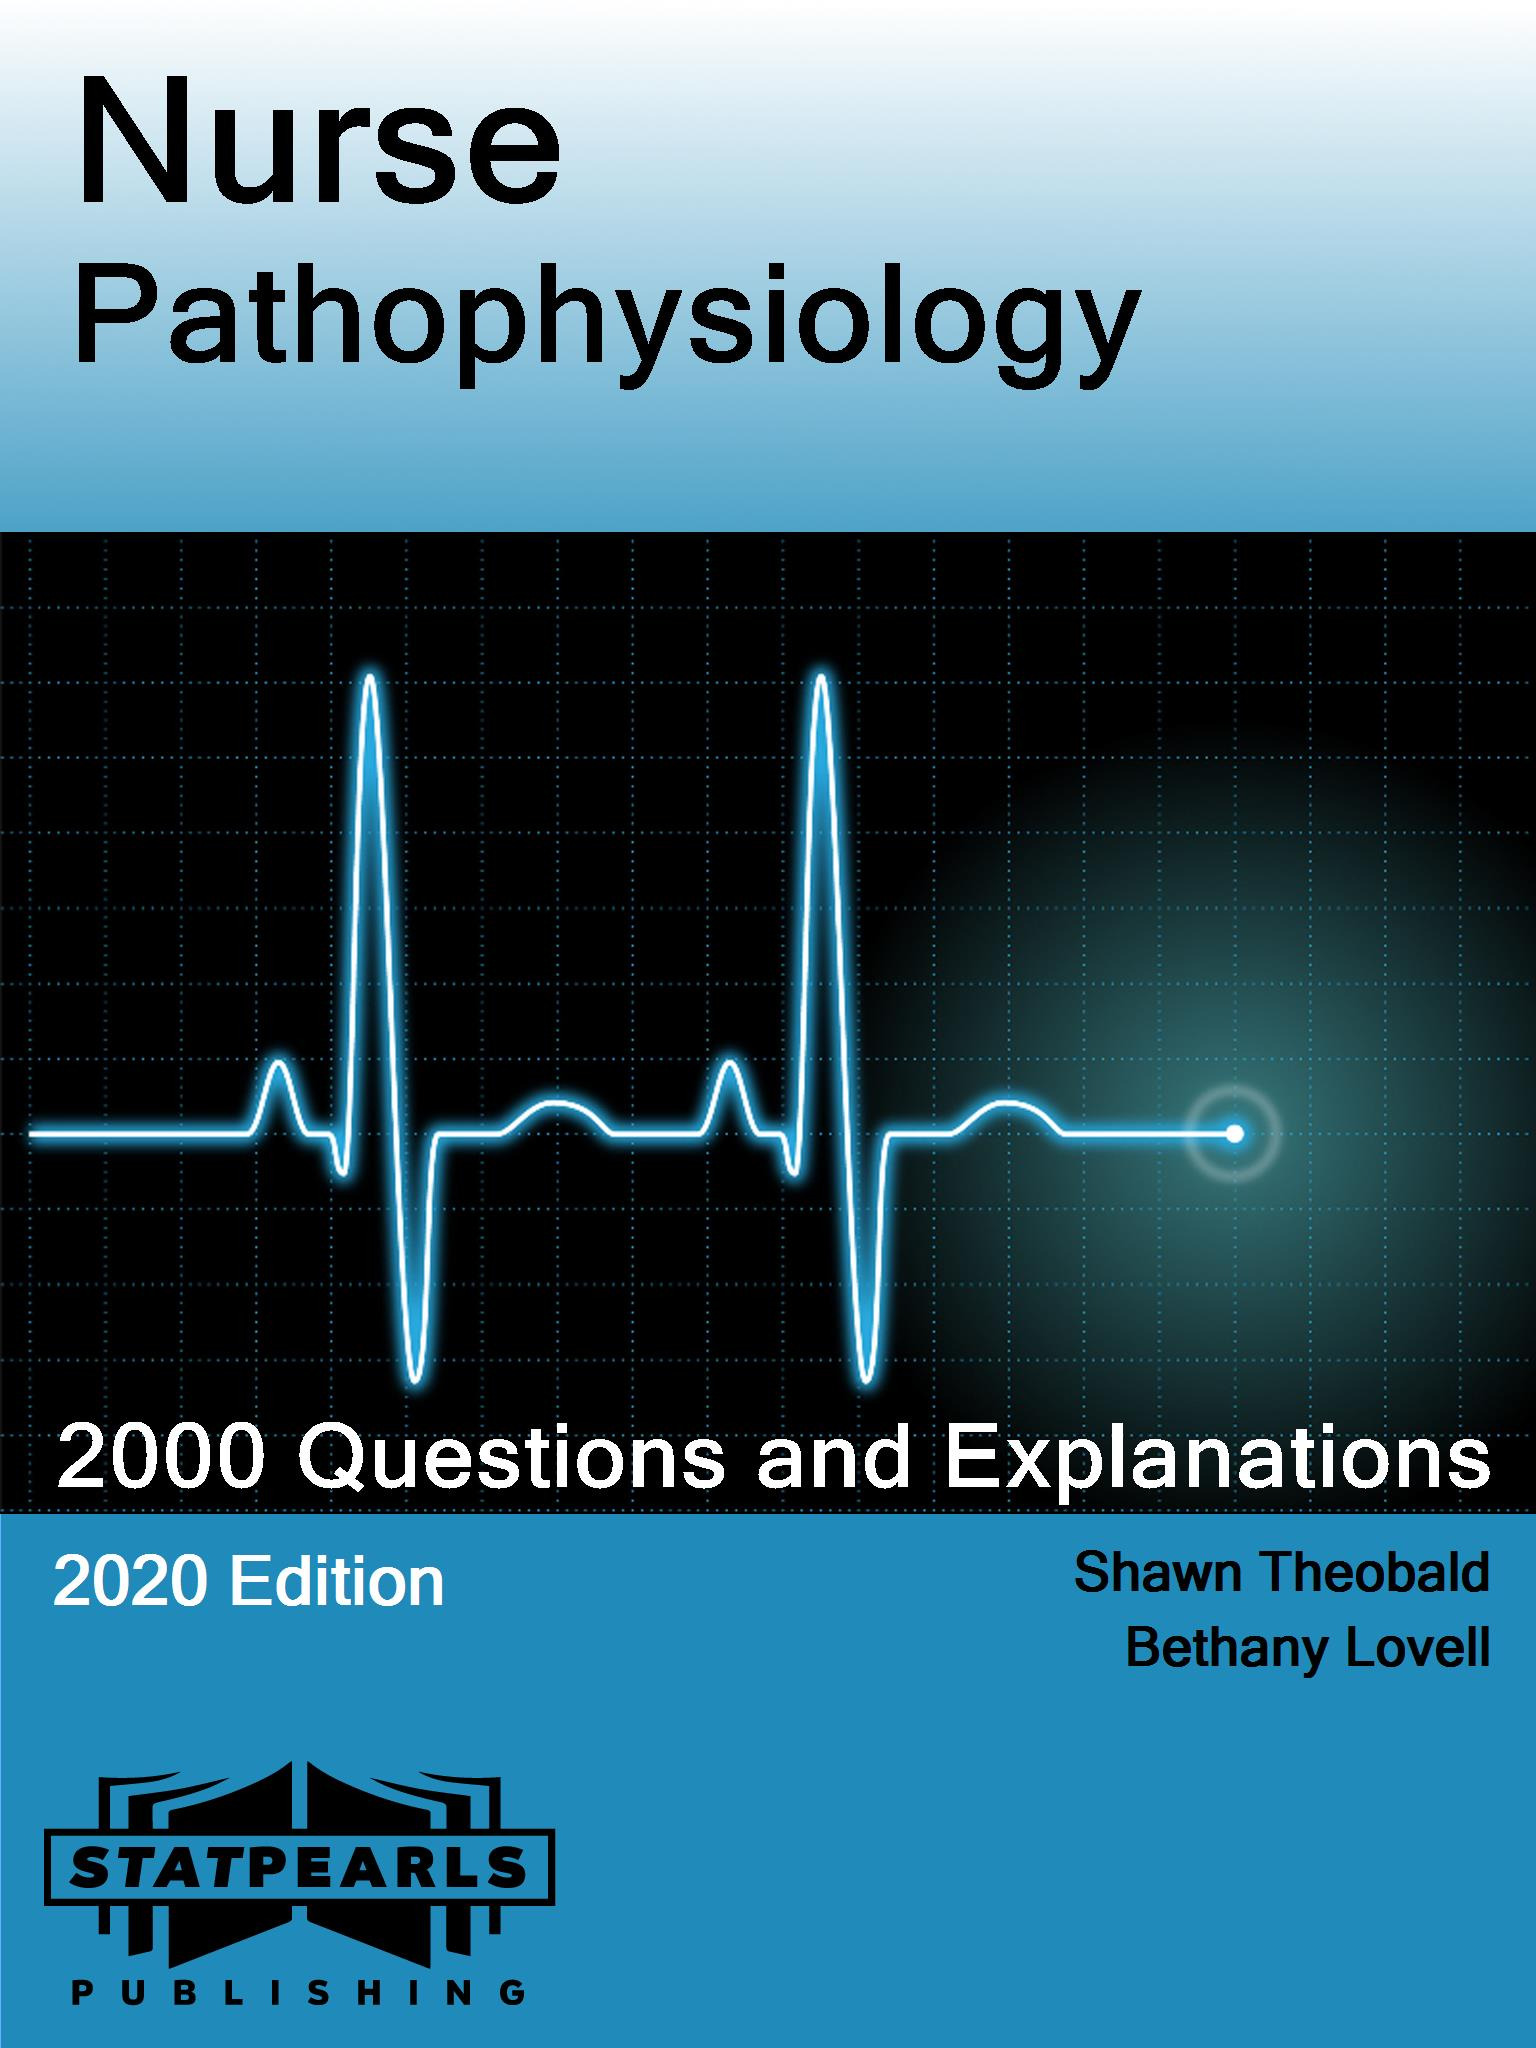 Nurse Pathophysiology